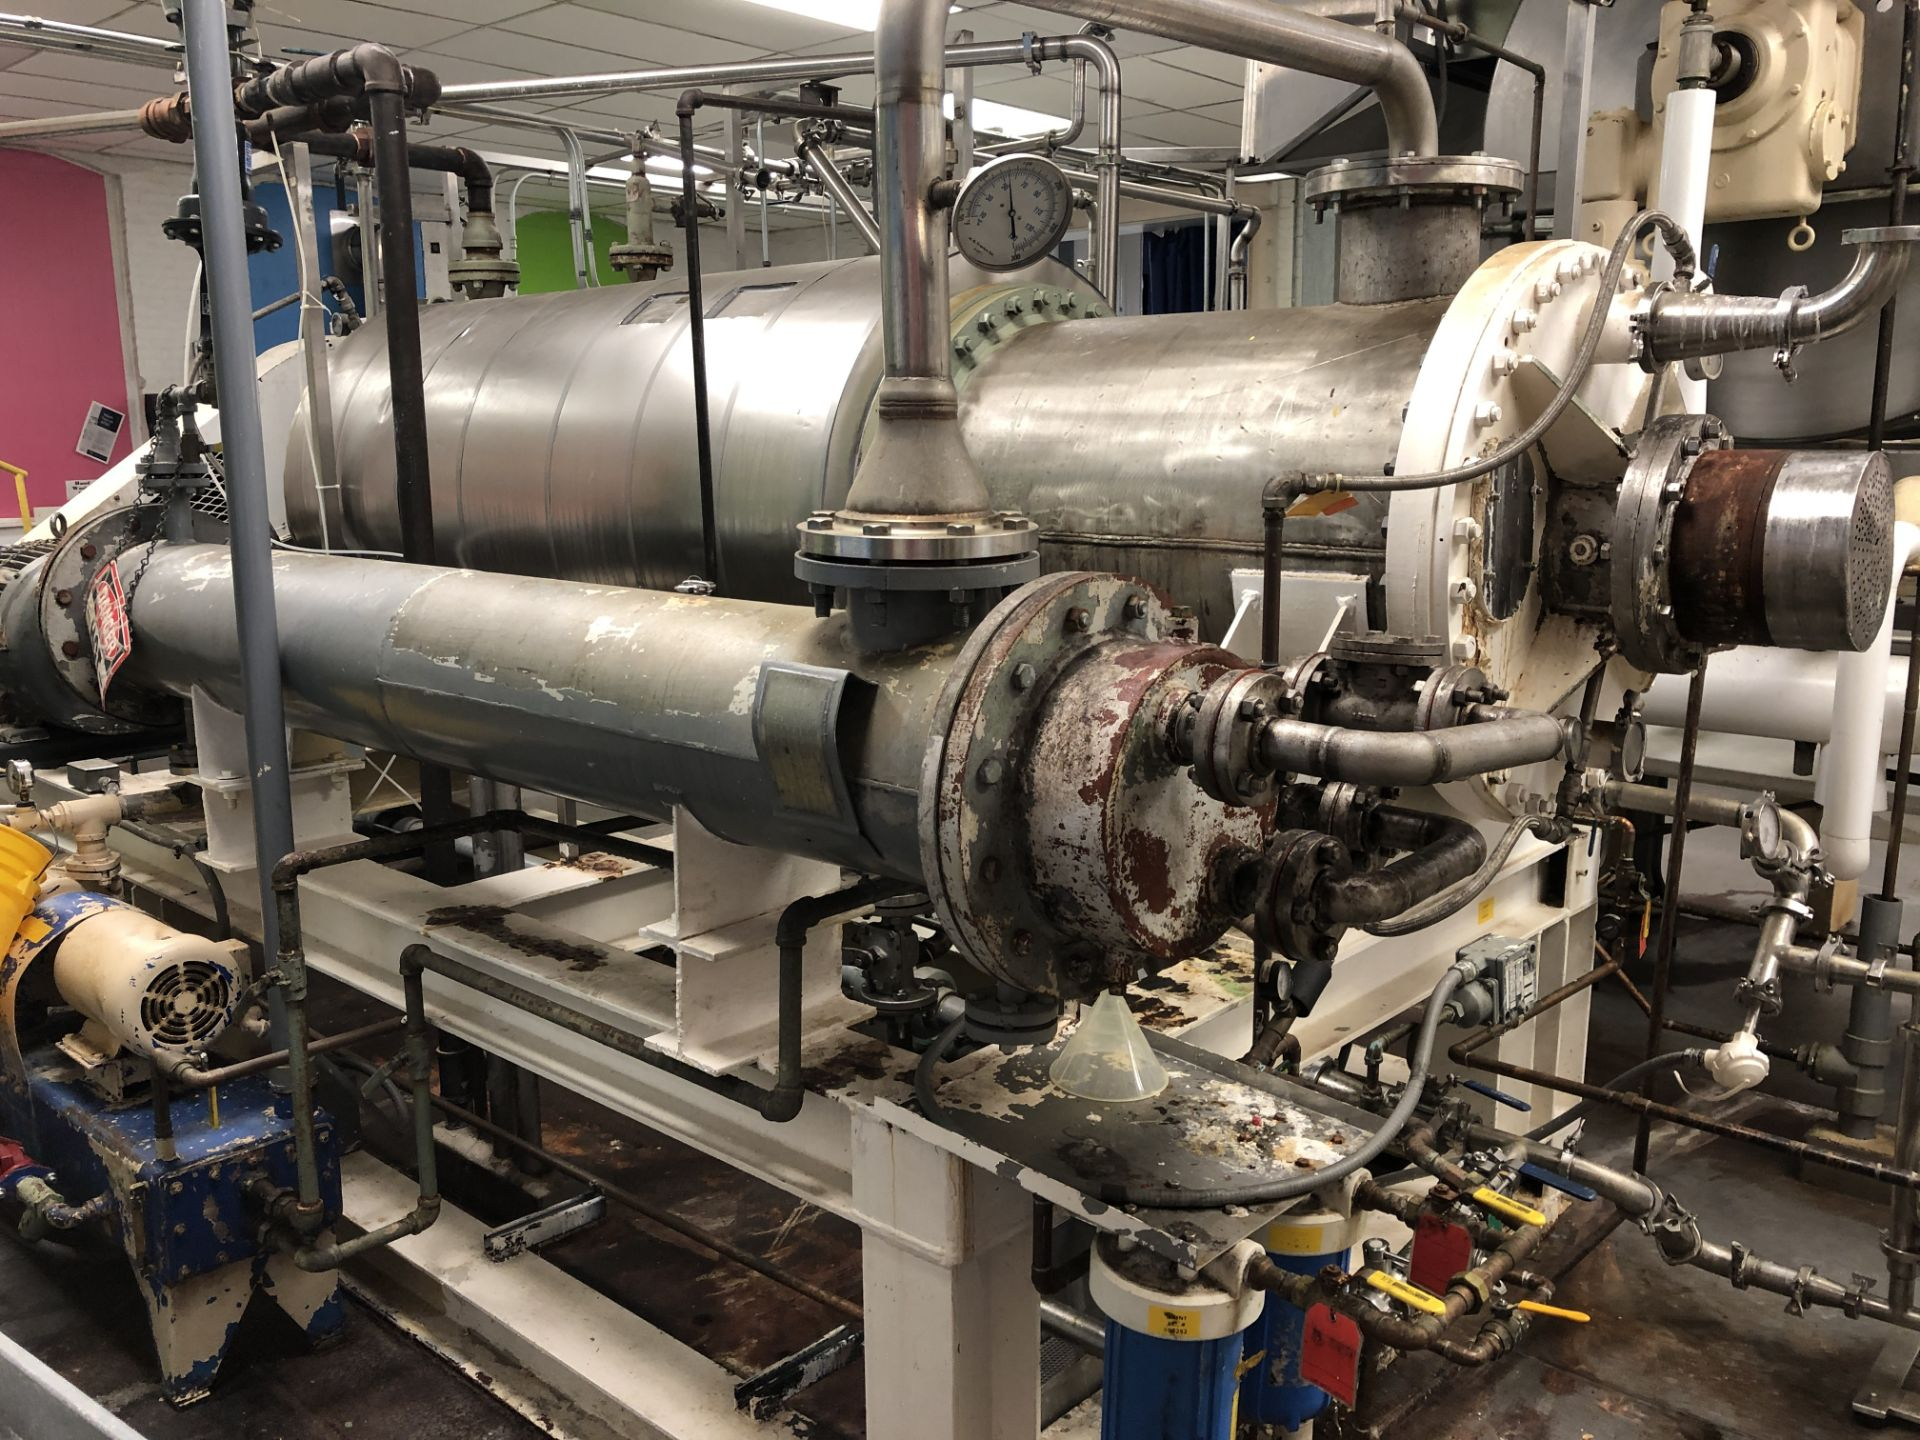 Lot 18 - Kontro Ajust-O-Film Continuous Caramel Cooker steam jacketed and agitated, 1000 to 3000 lbs hr.